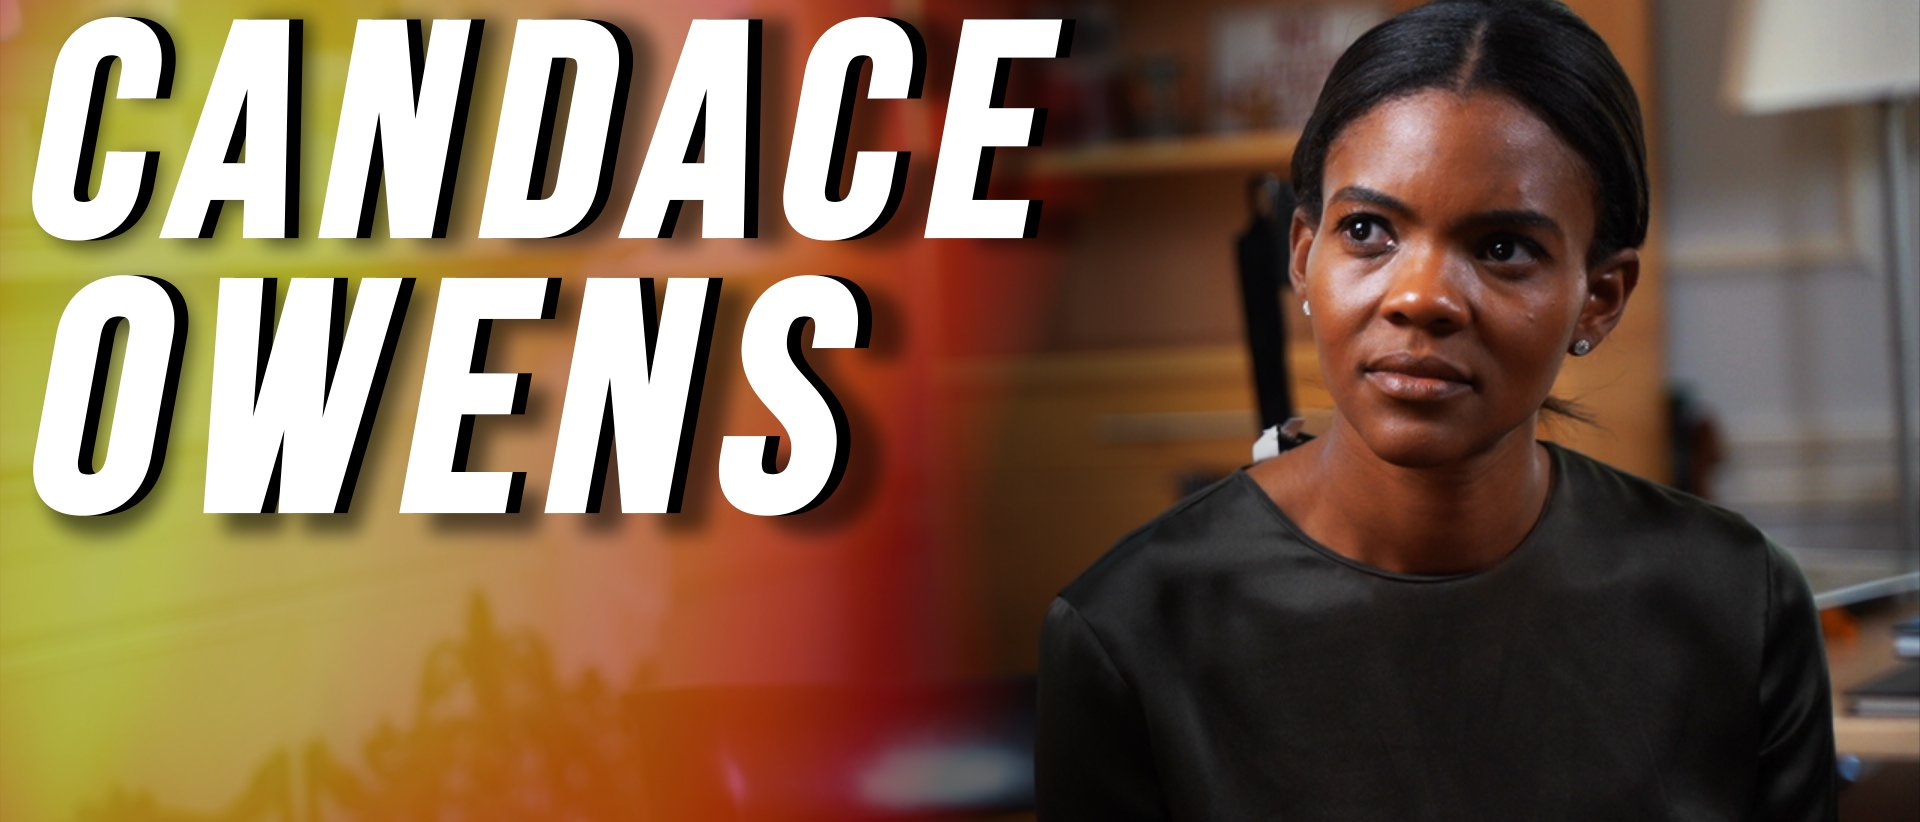 Exclusive Candace Owens Interview, Part One: Her Views On Black Lives Matter